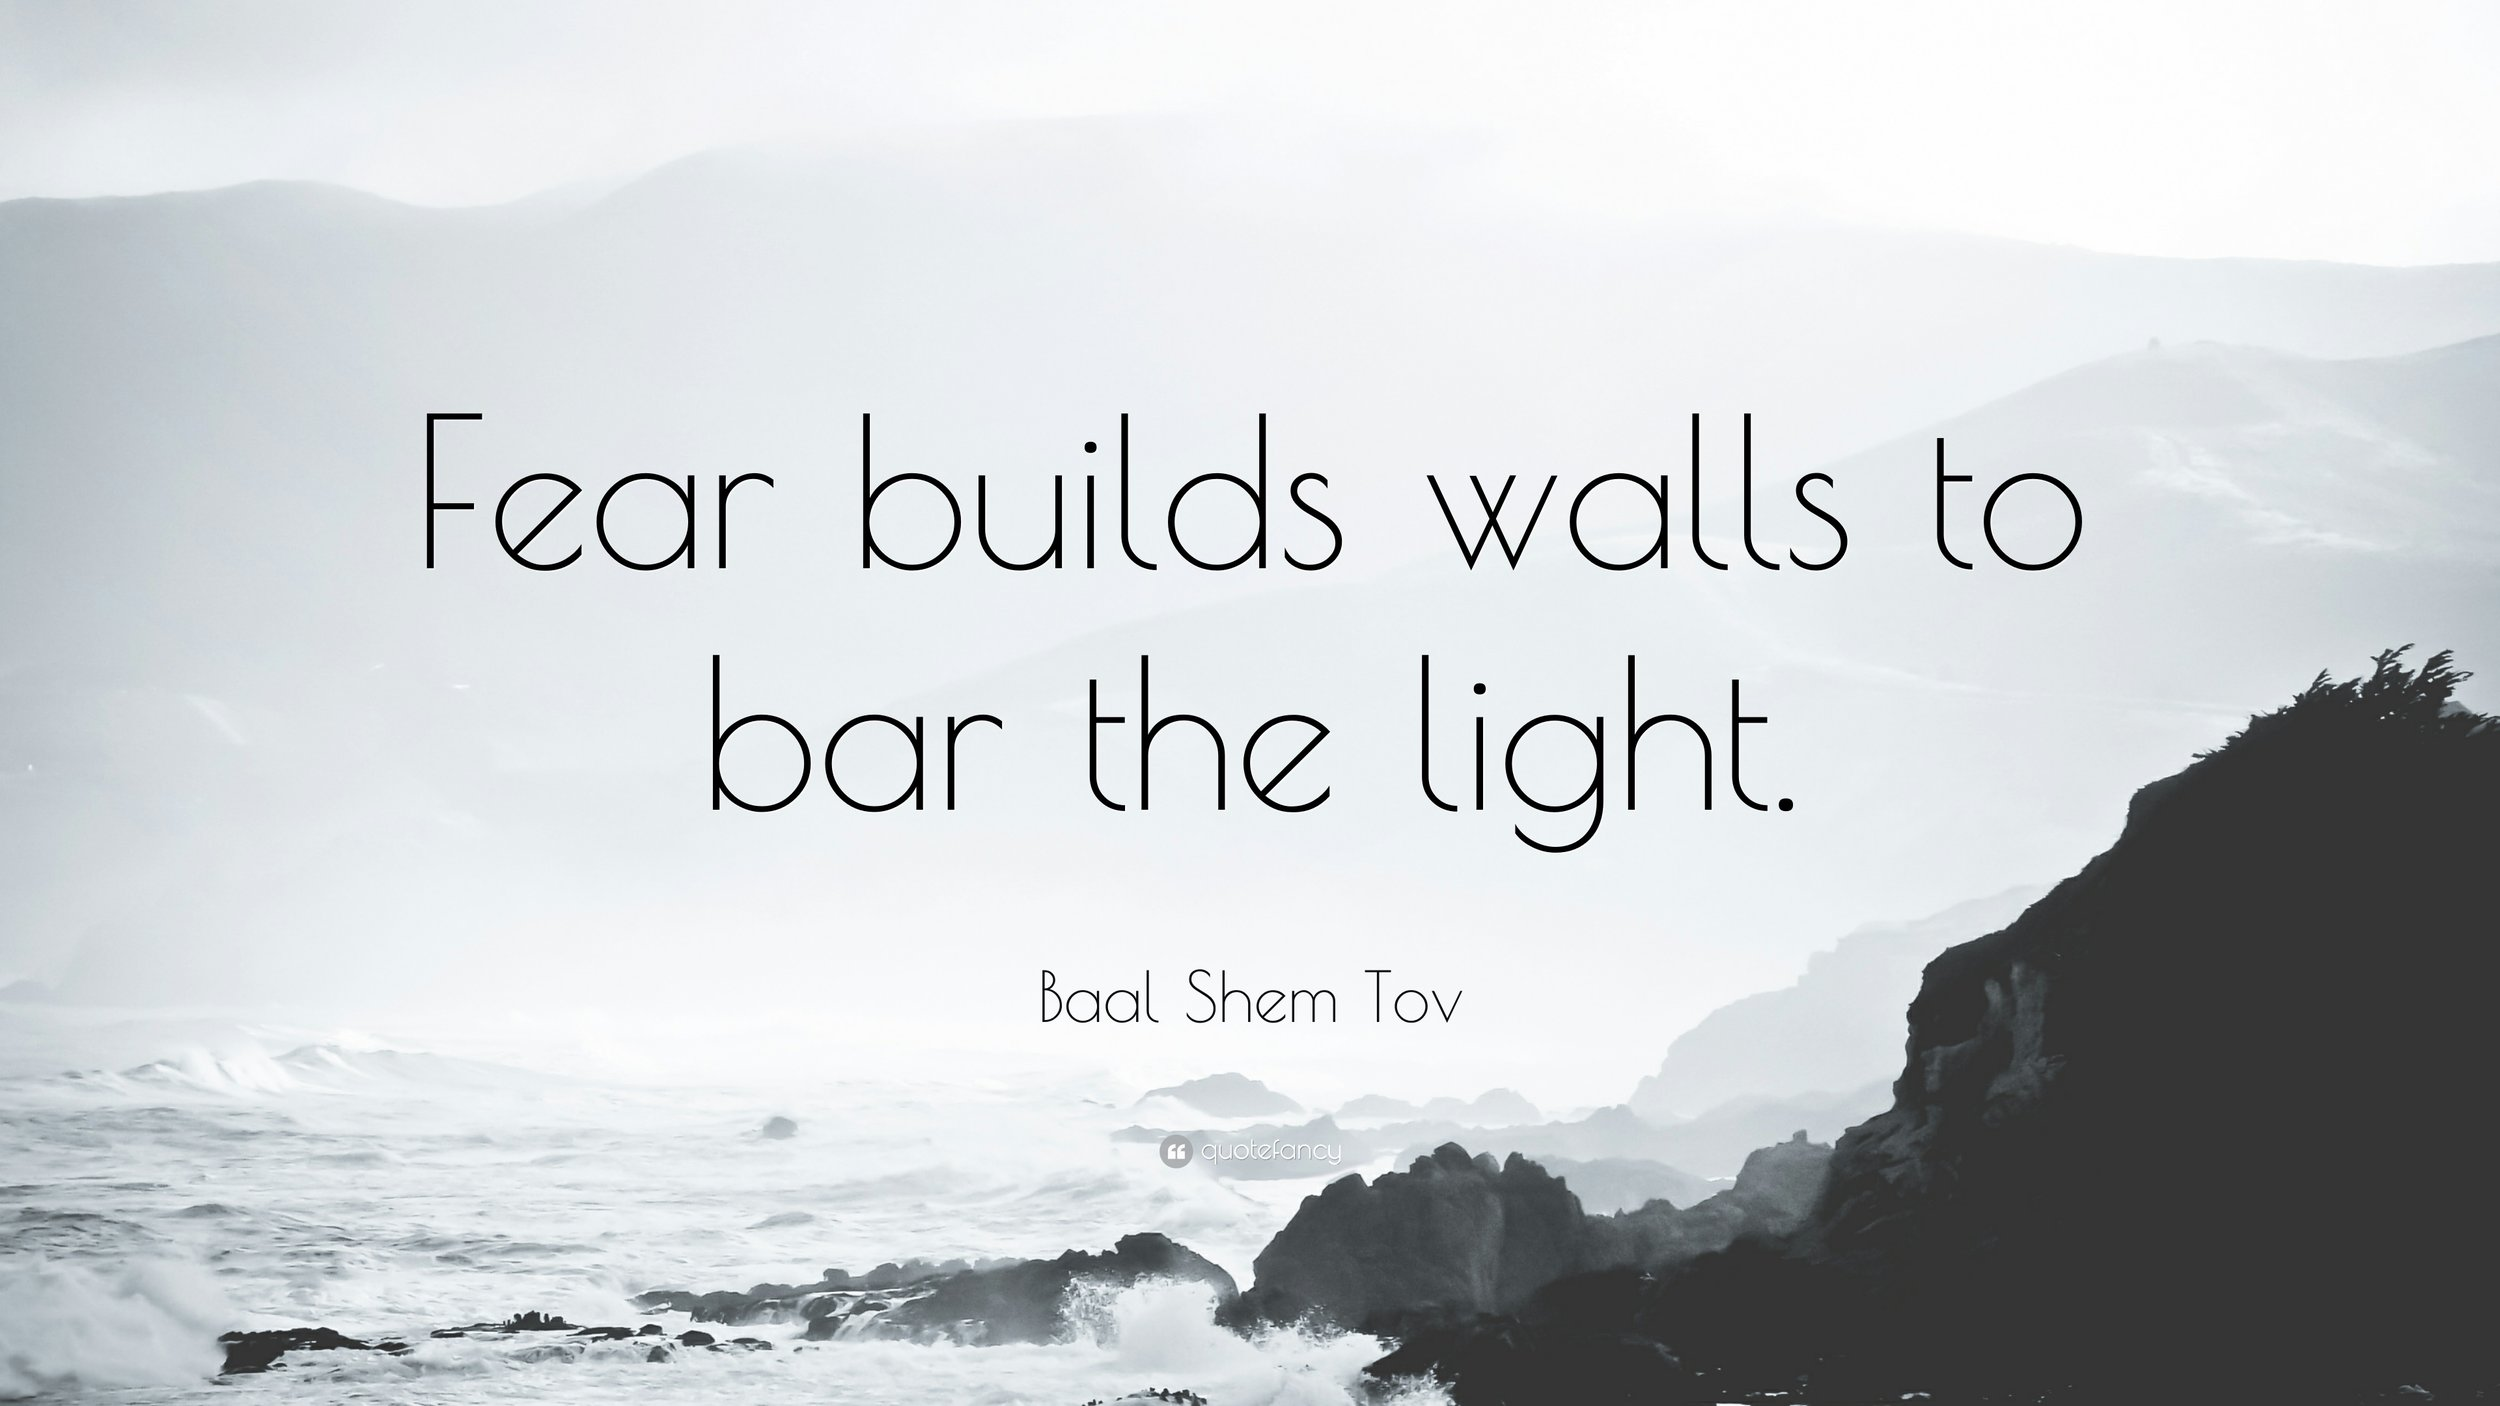 1297881-Baal-Shem-Tov-Quote-Fear-builds-walls-to-bar-the-light.jpg